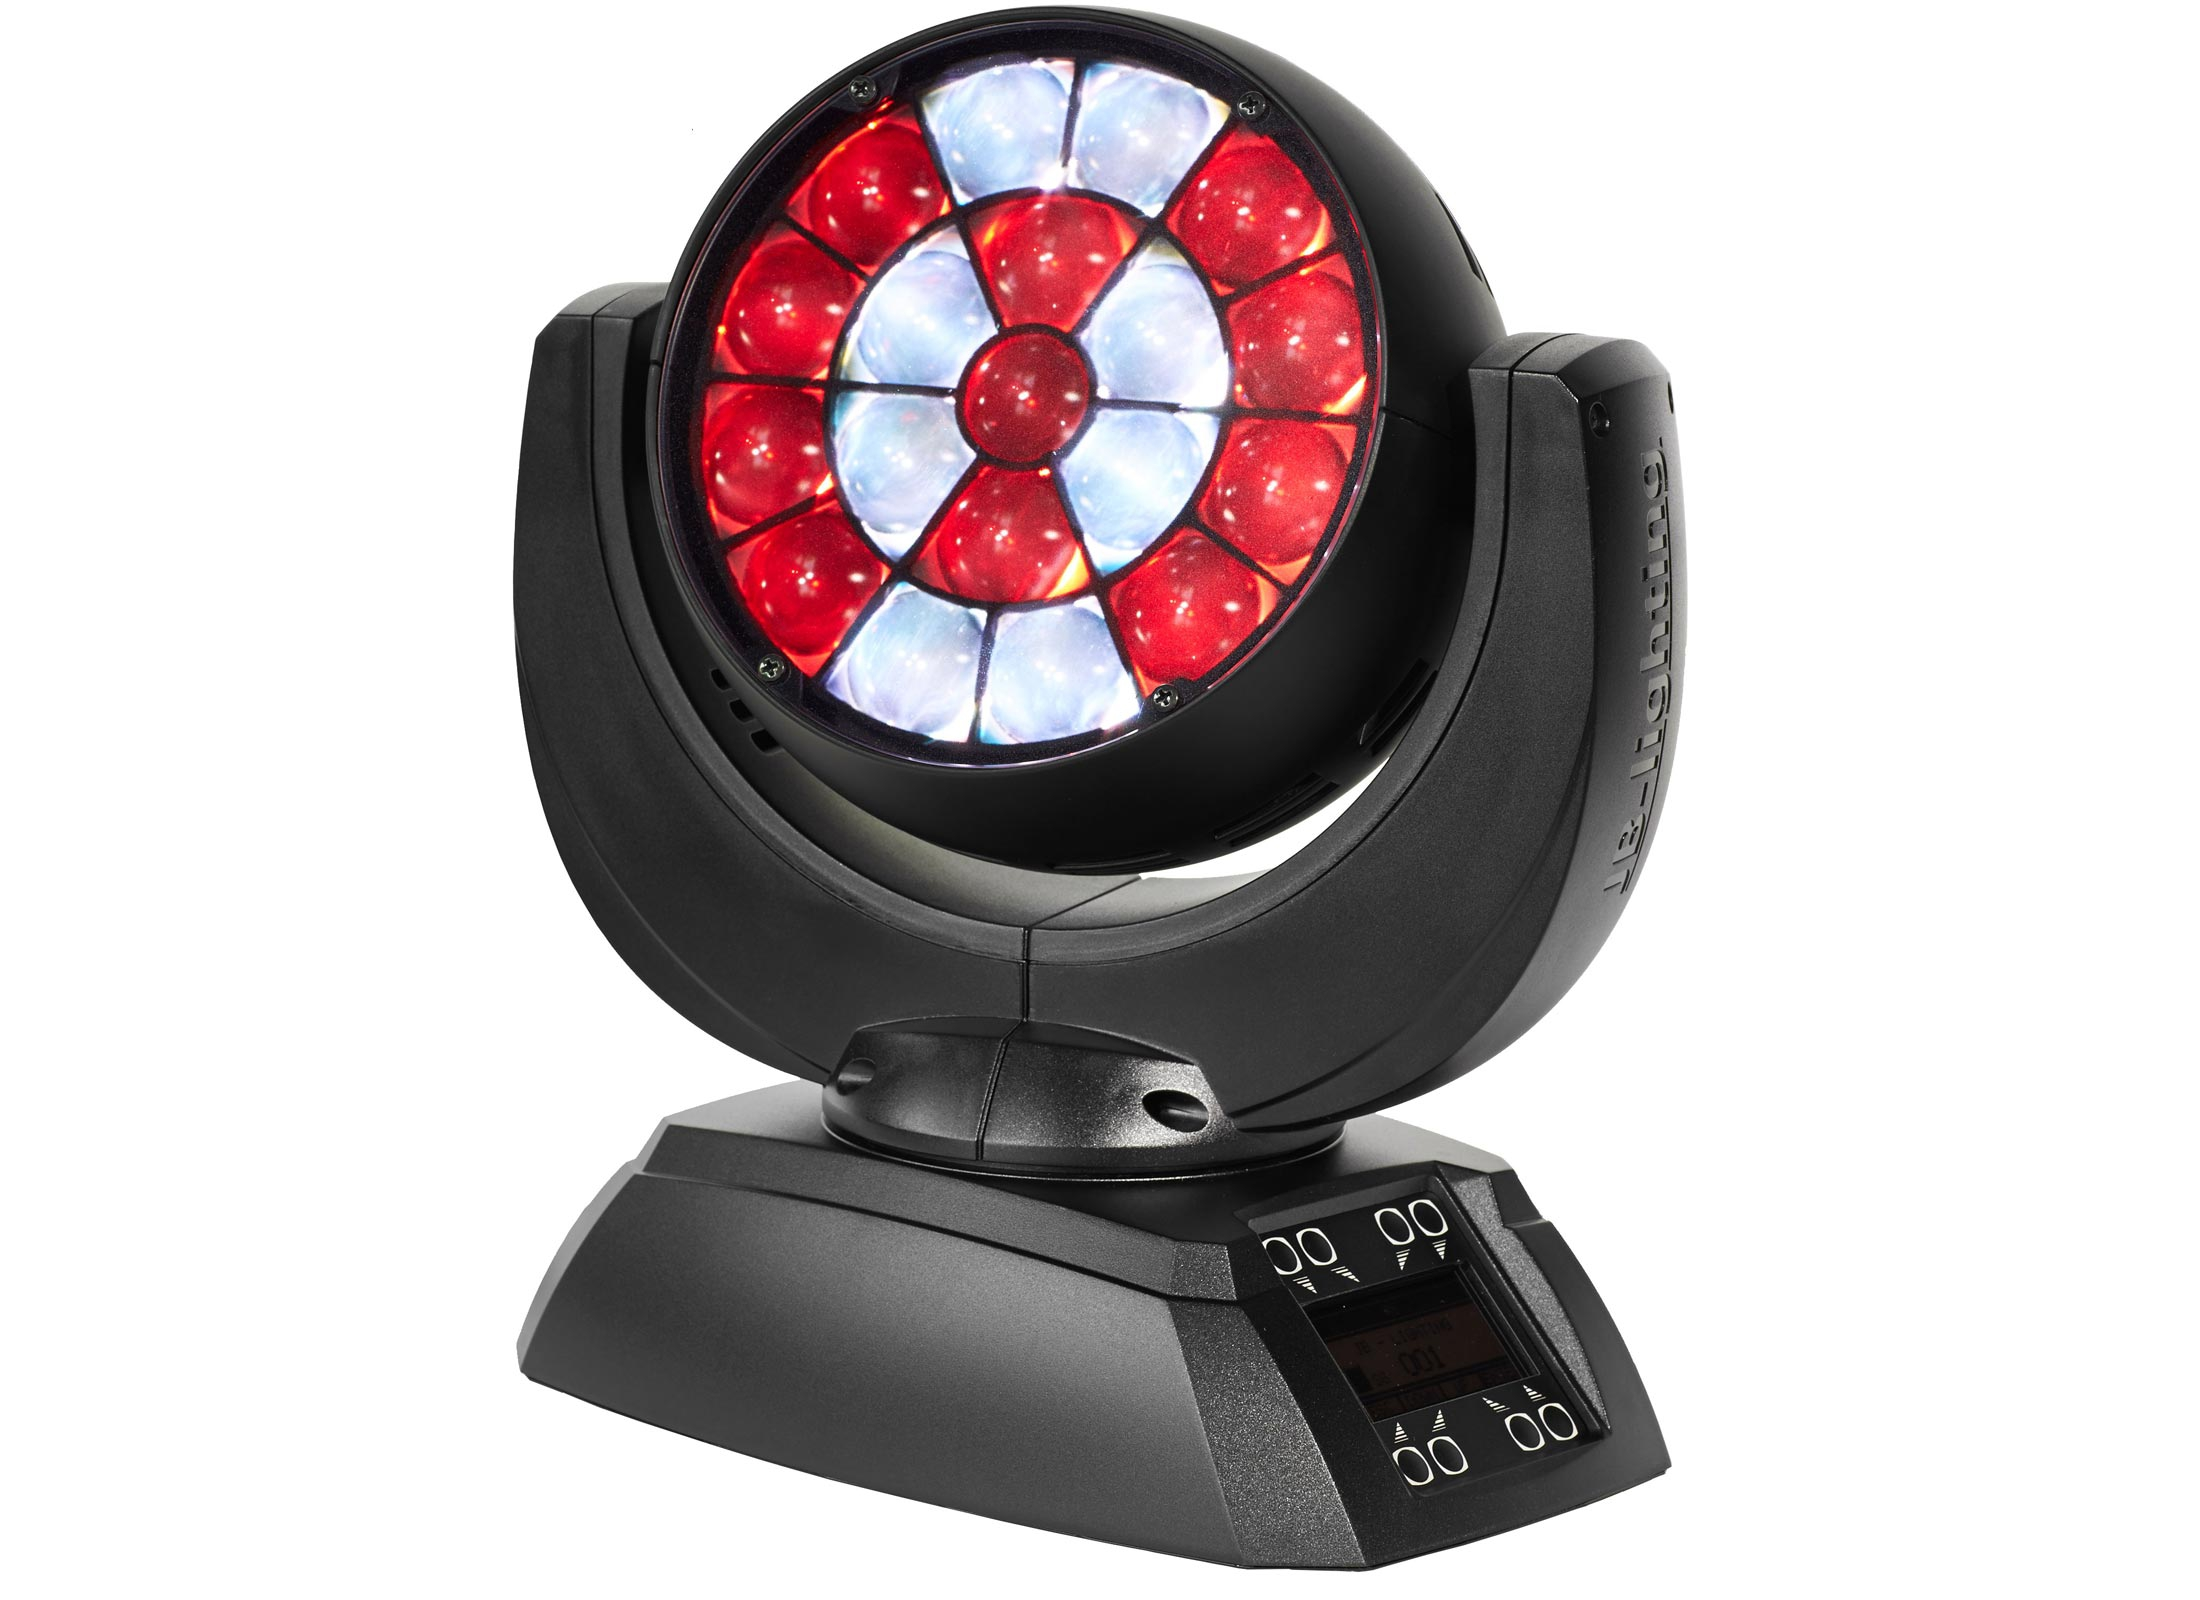 Jb Lighting A12 Kaufen Jb Lighting Sparx 7 Led Moving Head Wash Günstig Online